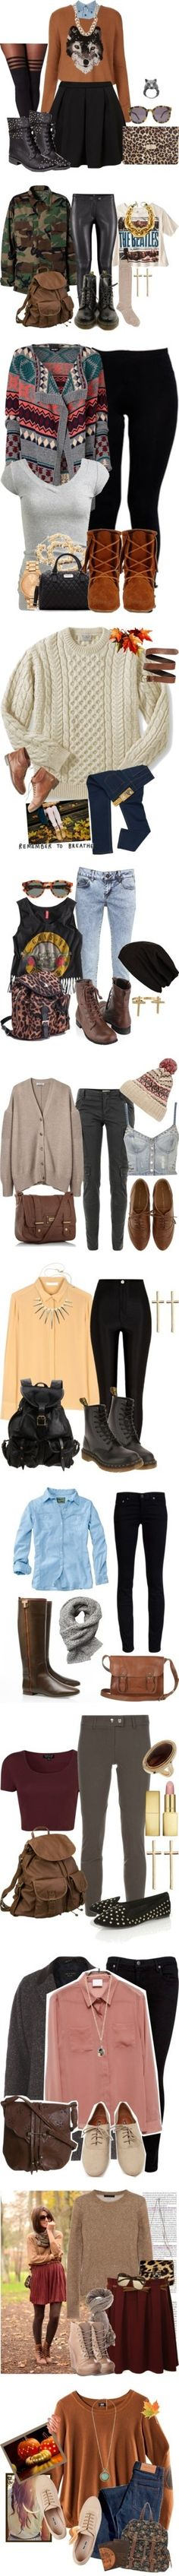 Fall outfits #clothes